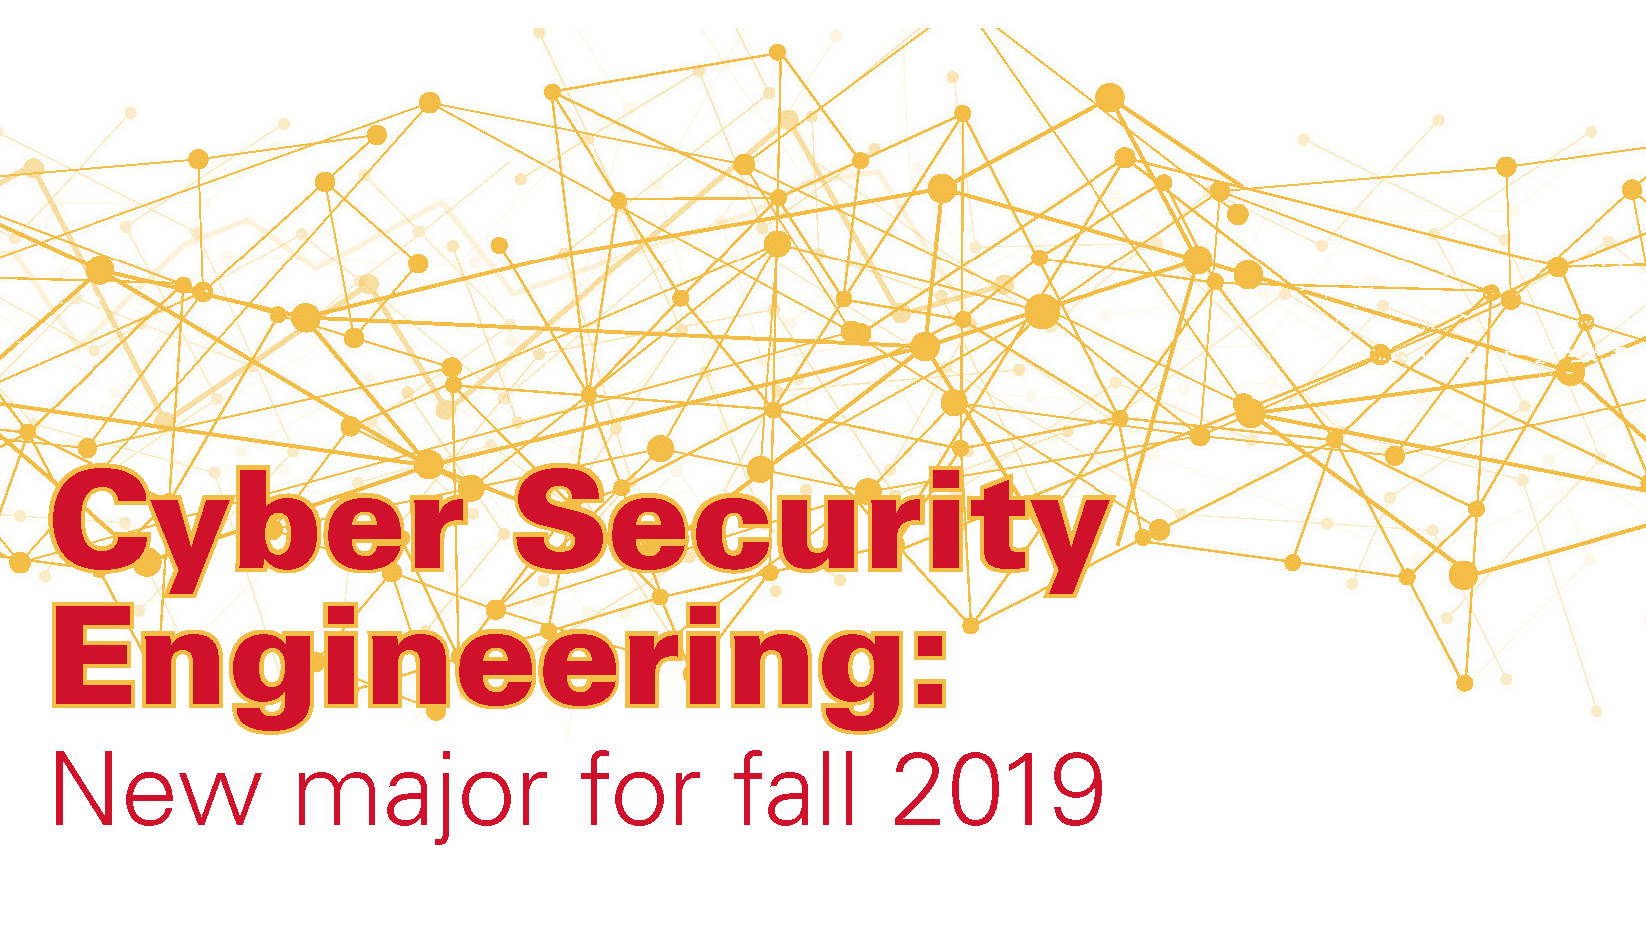 Cyber Security Engineering: New major for fall 2019